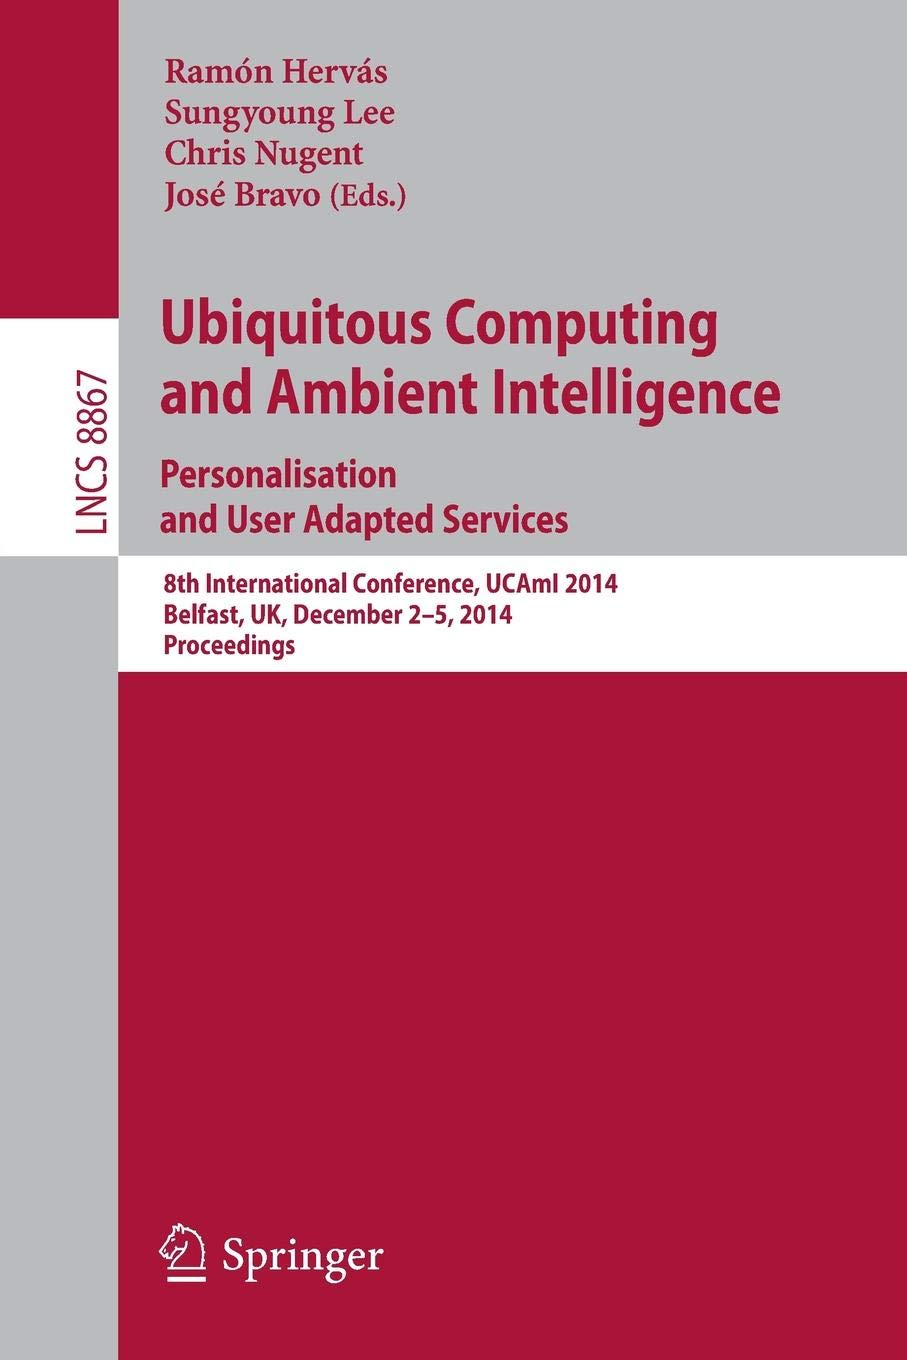 Ubiquitous Computing and Ambient Intelligence: Personalisation and User Adapted Services: 8th International Conference, UCAmI 2014, Belfast, UK, ... (Lecture Notes in Computer Science)